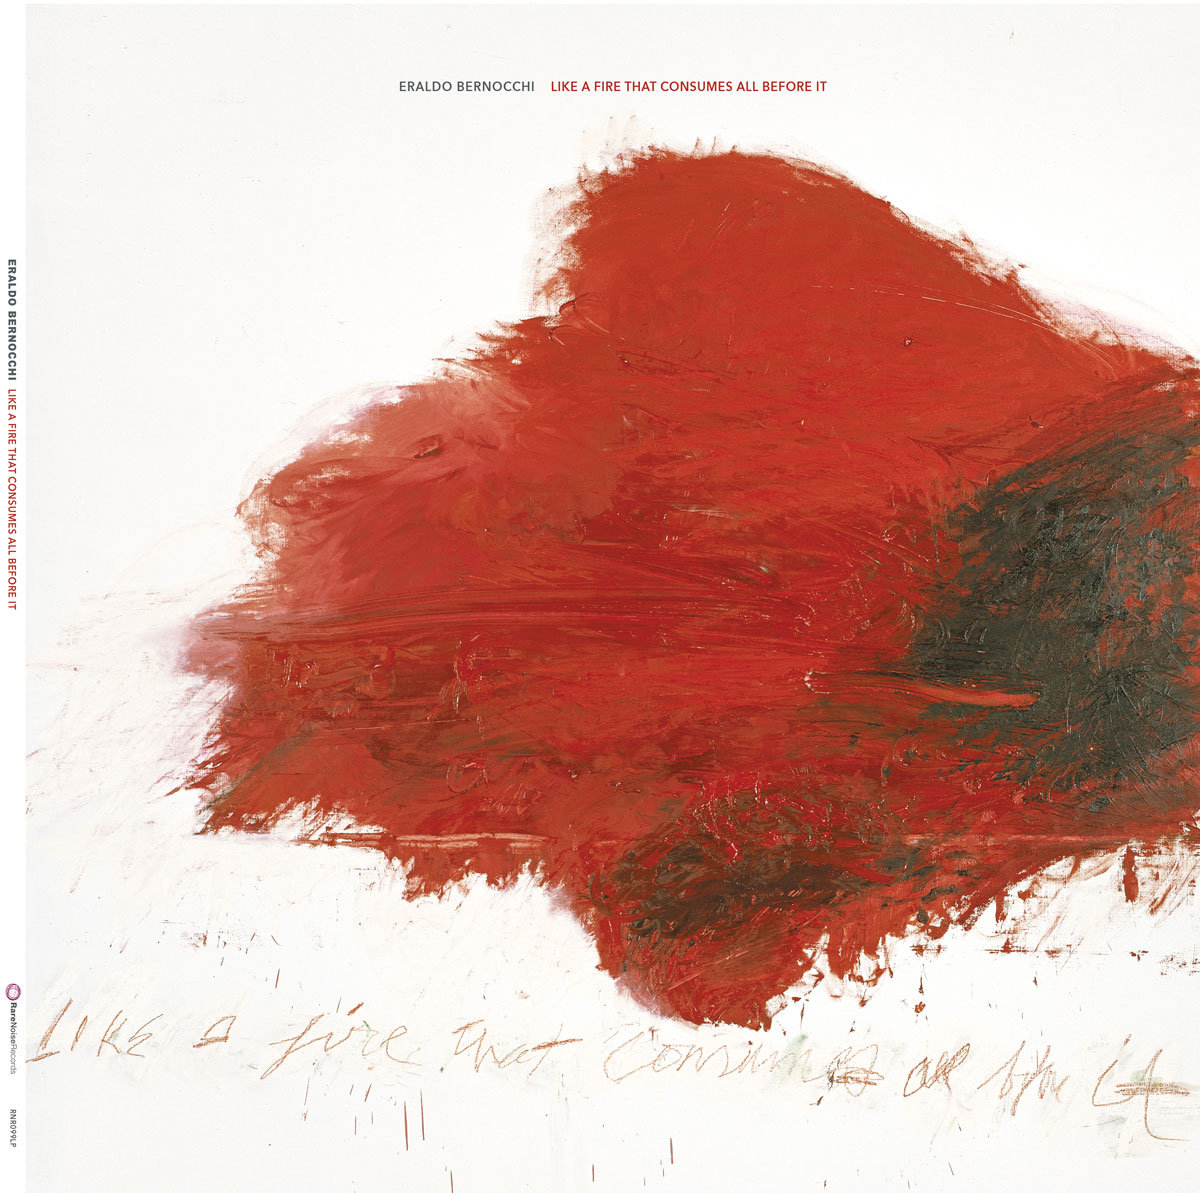 ERALDO BERNOCCHI - LIKE A FIRE THAT CONSUMES ALL BEFORE IT - ALBUM - COVER - 2018